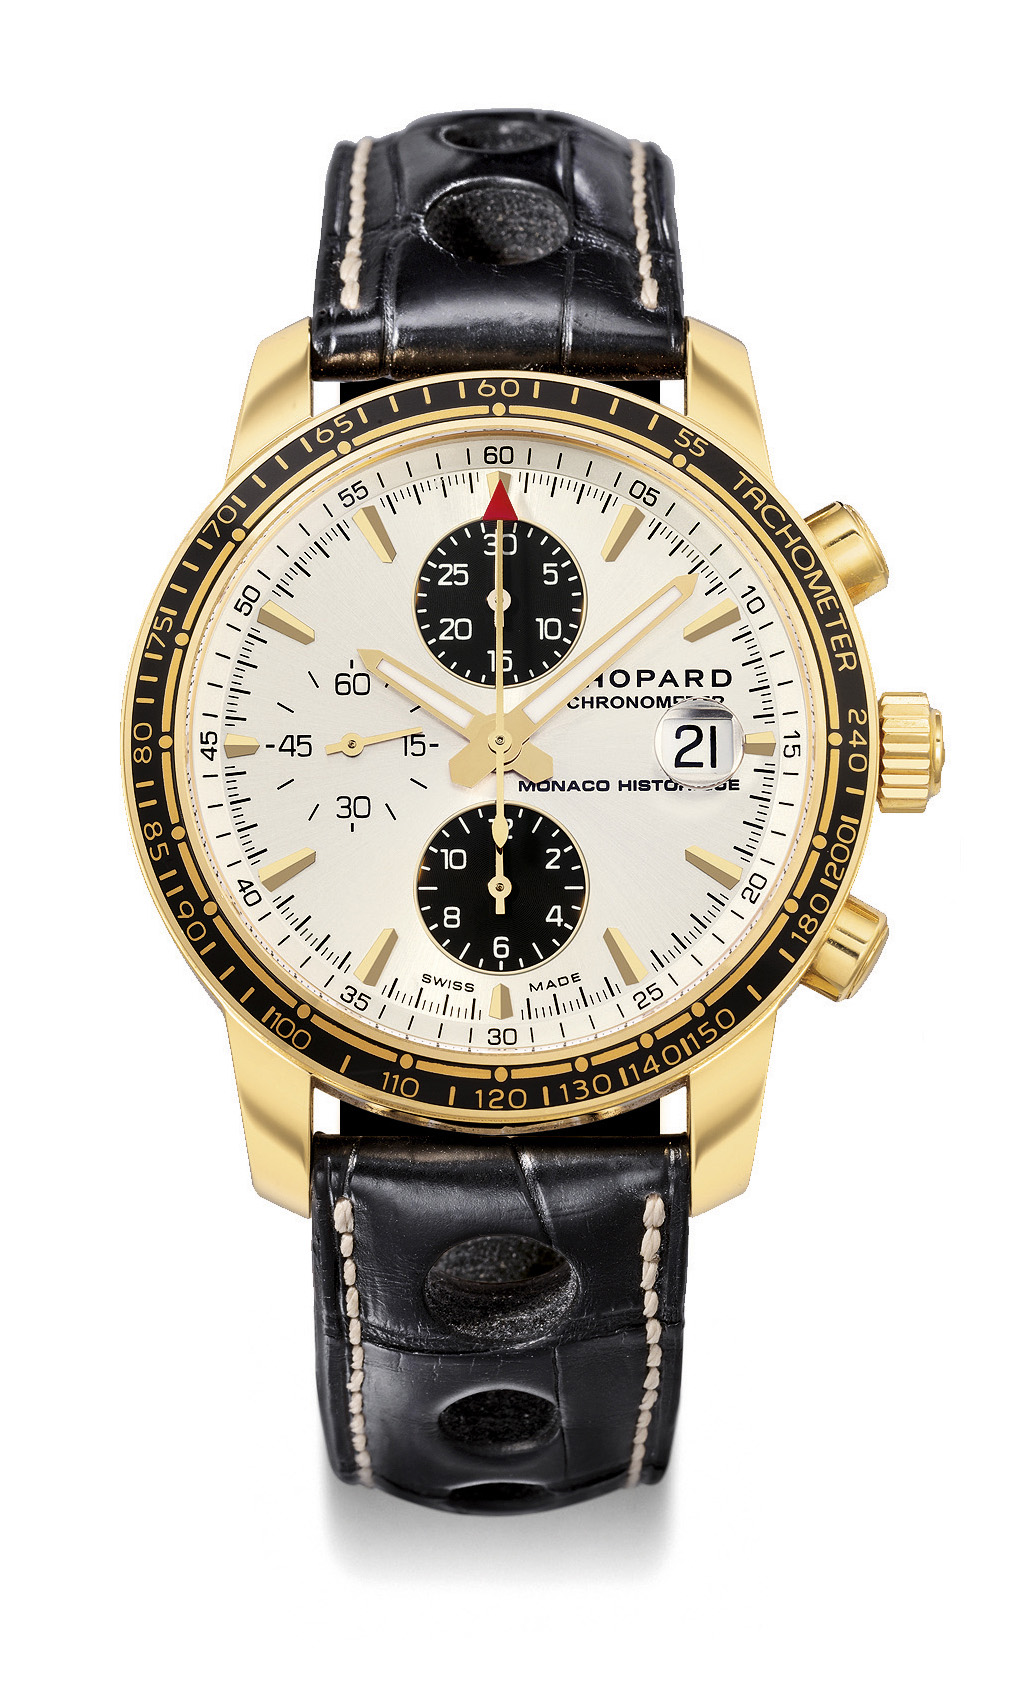 chopard ref 1275 grand prix de monaco historique yellow gold automatic chronograph wristwatch. Black Bedroom Furniture Sets. Home Design Ideas